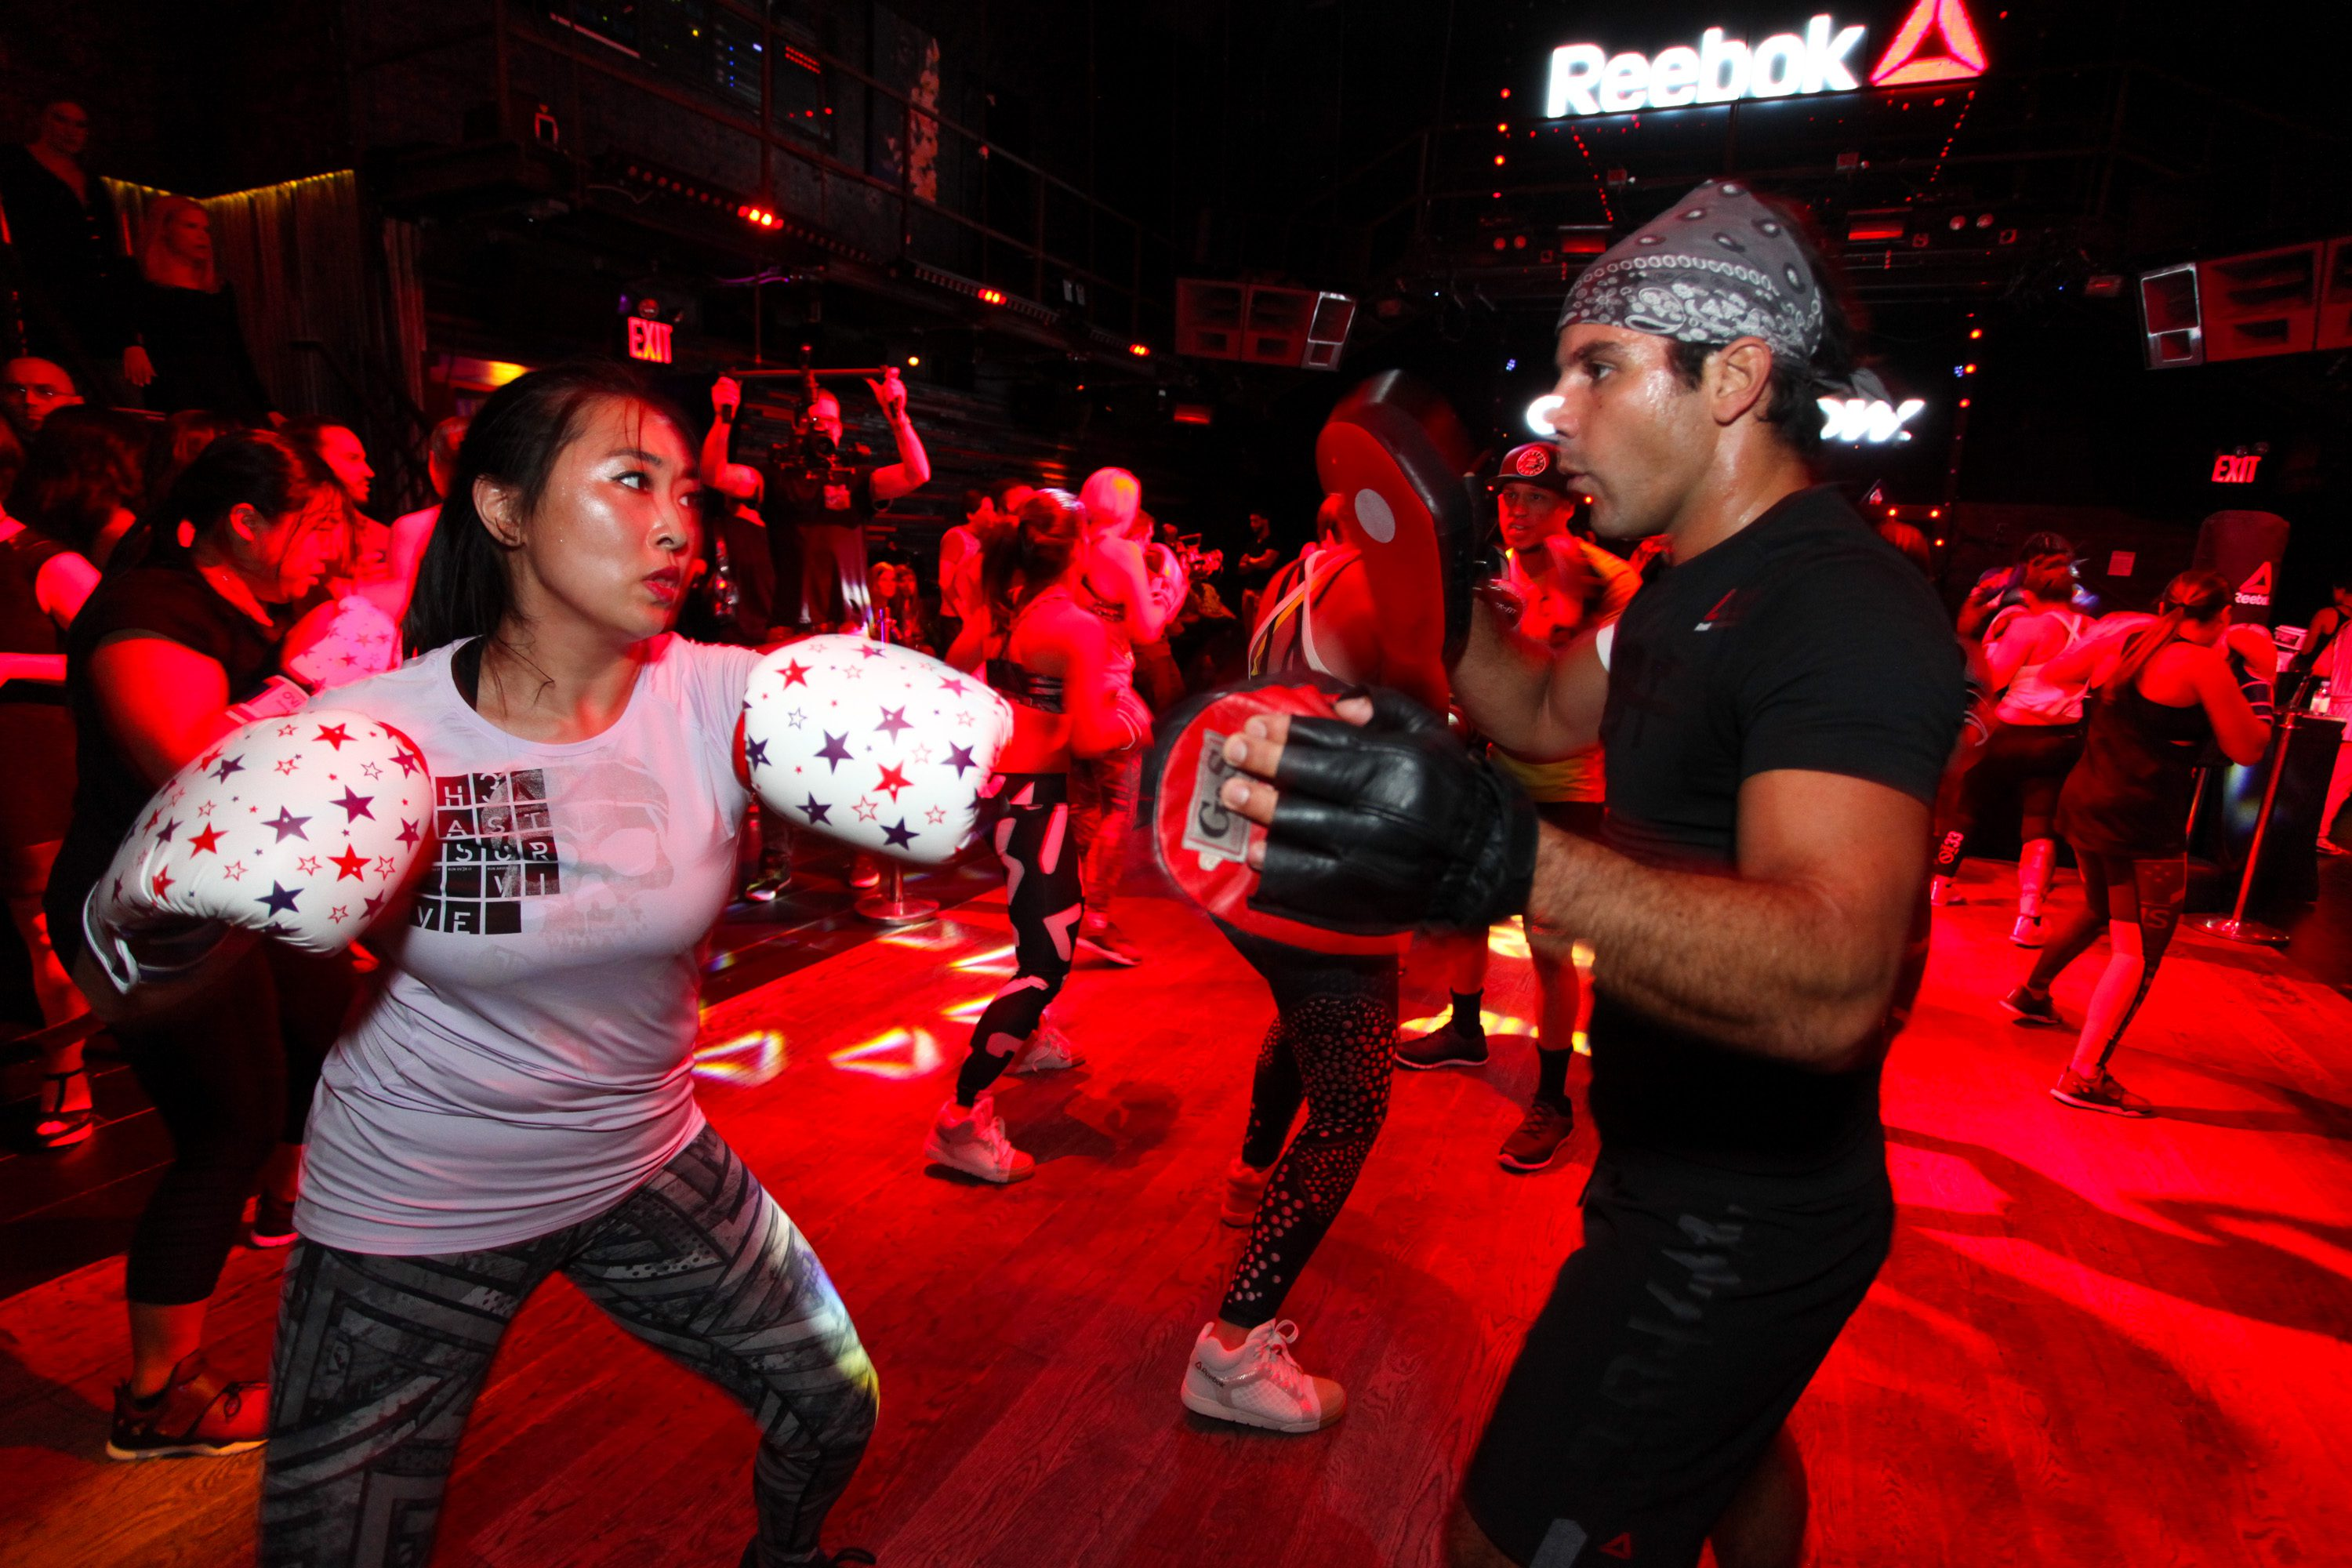 NEW YORK, NY - SEPTEMBER 16: Guests participate in the Ultimate Boxing Overthrow Class at Marquee on September 16, 2015 in New York City. (Photo by Donald Bowers/Getty Images for Reebok)